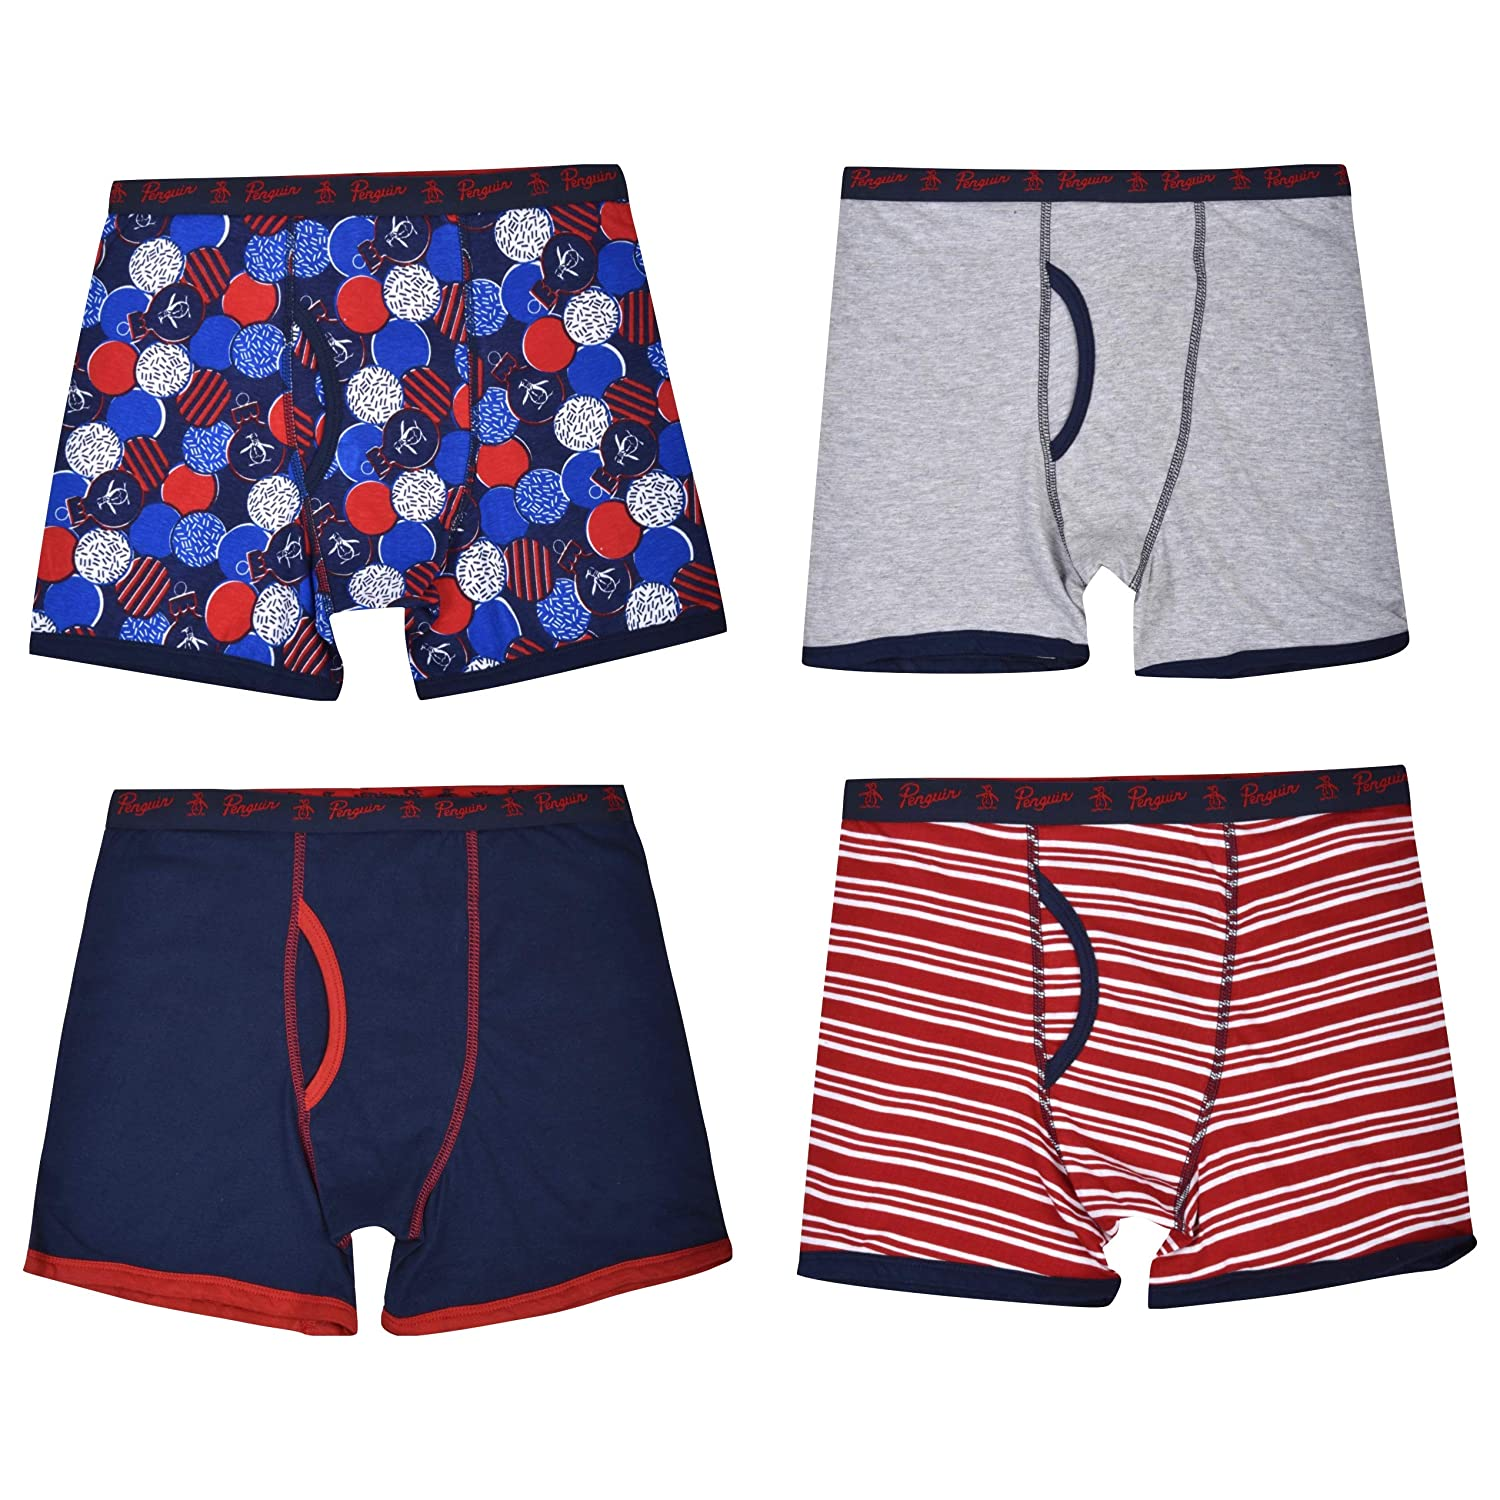 Original Penguin Boys 4-Pack Tagless Jersey Cotton Winter-Theme Printed Boxer Briefs Holiday Box Bonus!